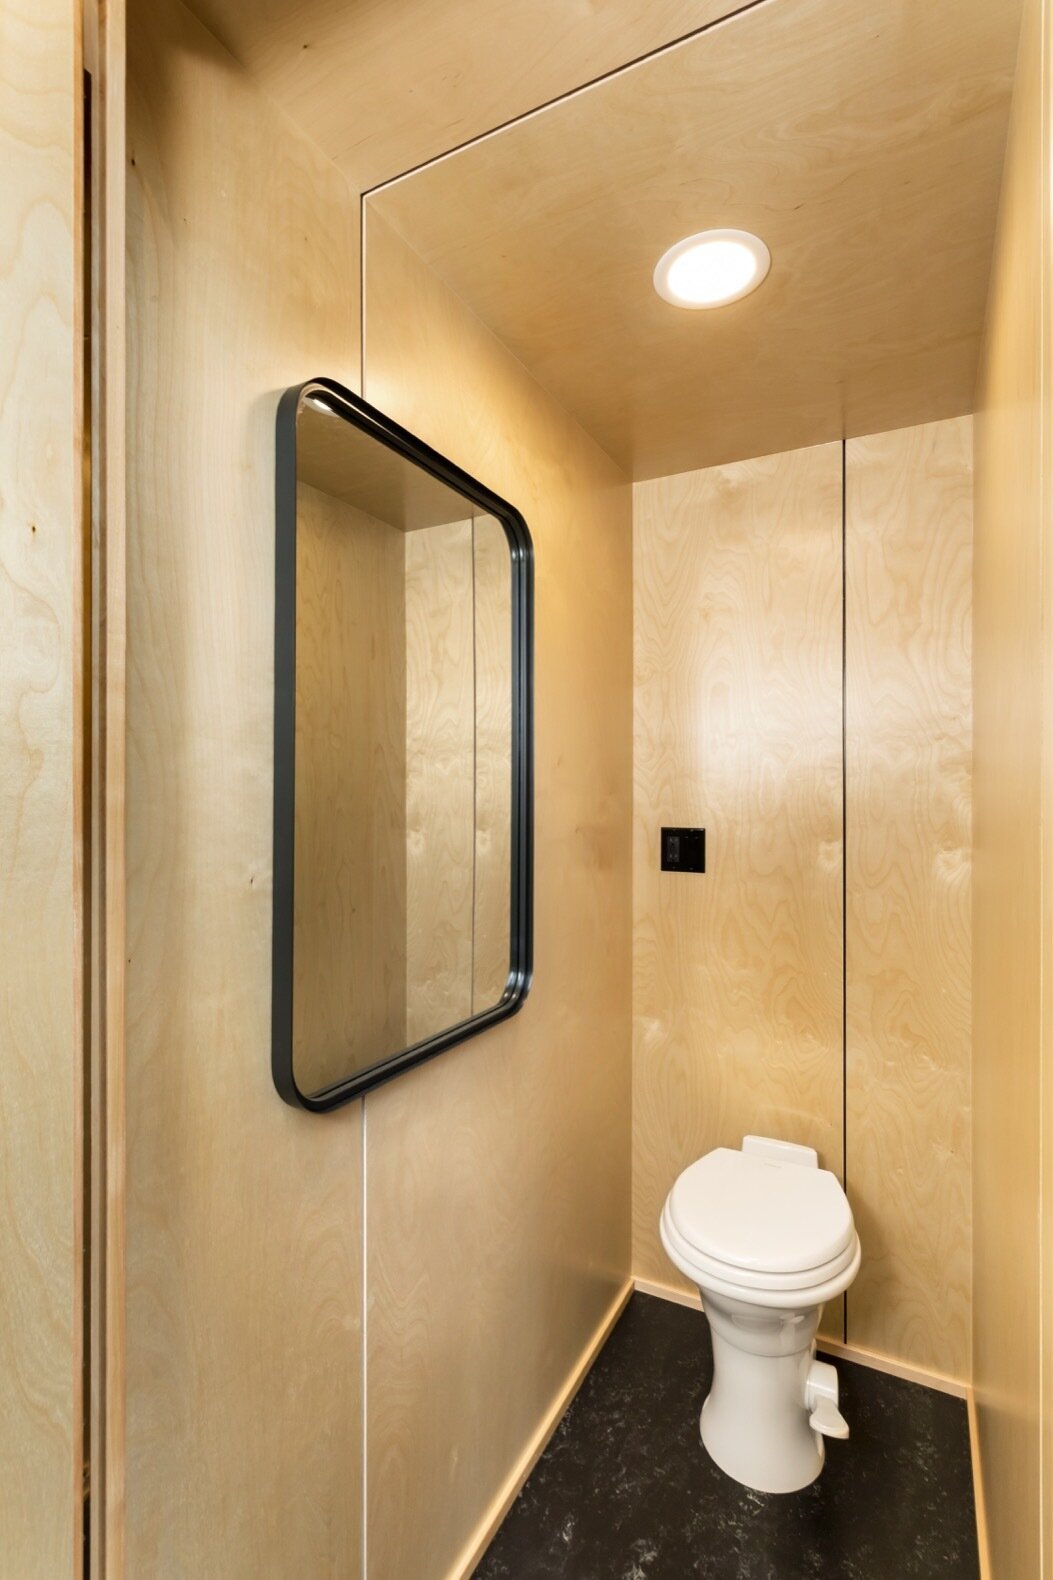 The DW by Modern Shed bathroom